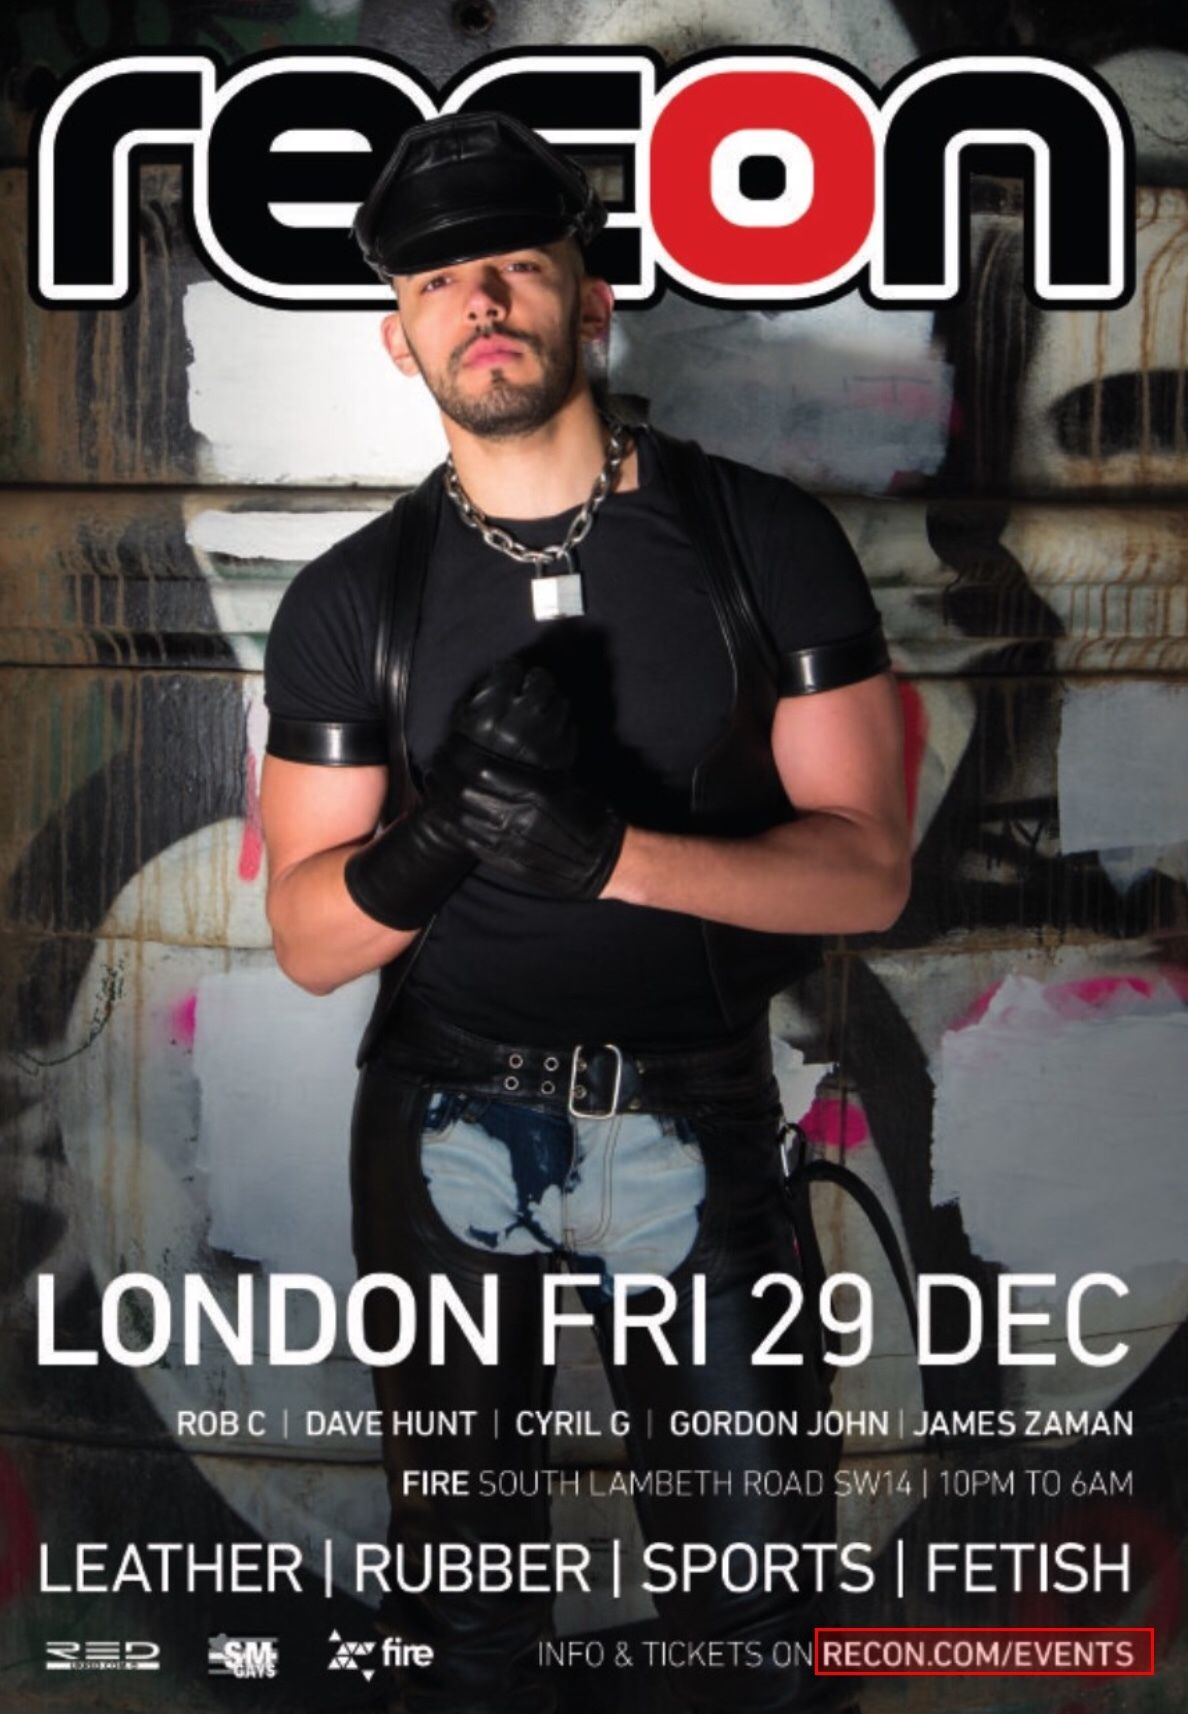 from Jamal gay london clubbing